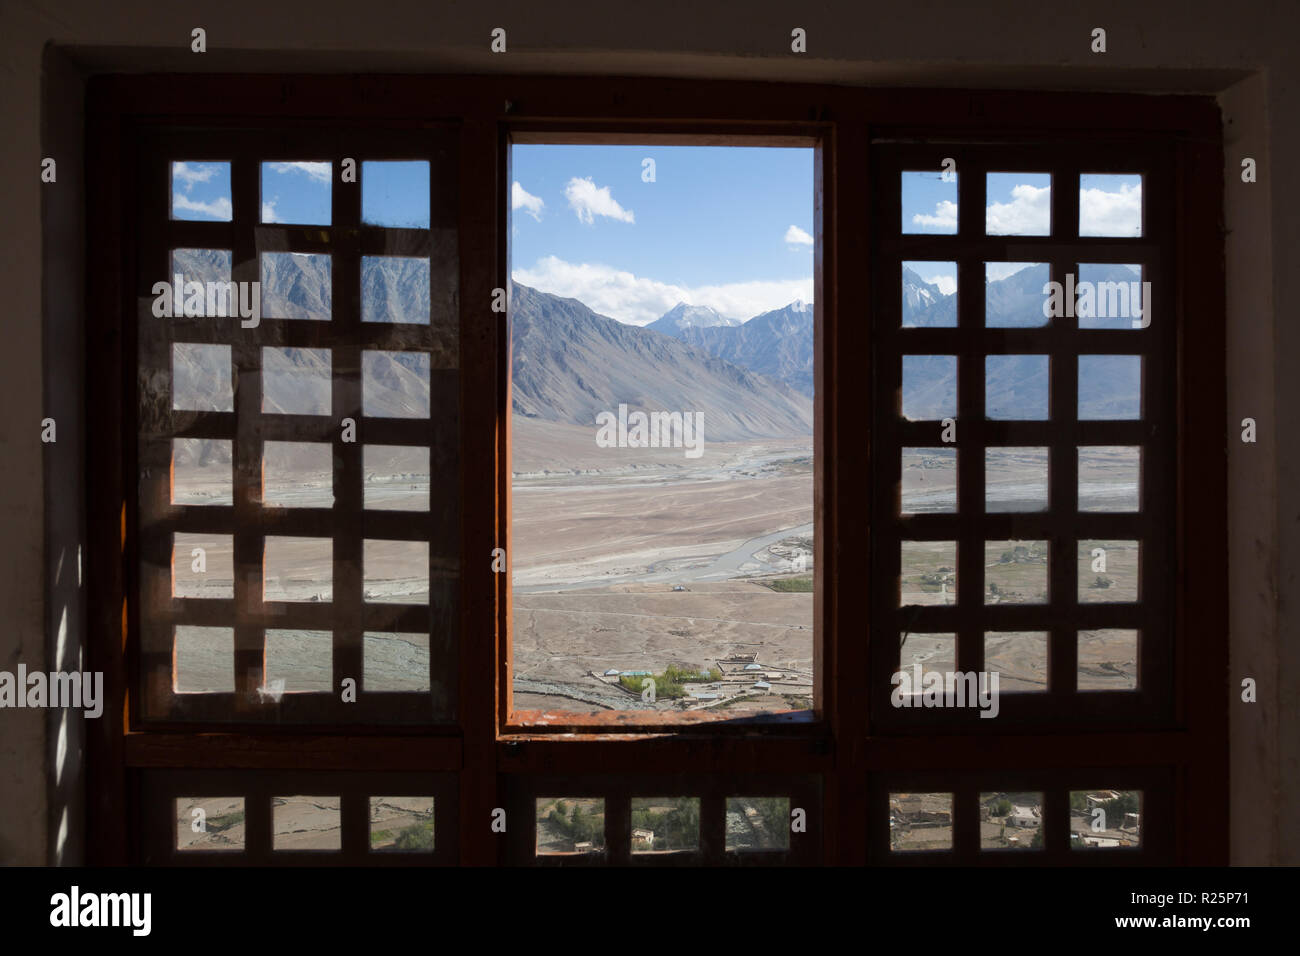 Traditional Tibetan Windows High Resolution Stock Photography And Images Alamy